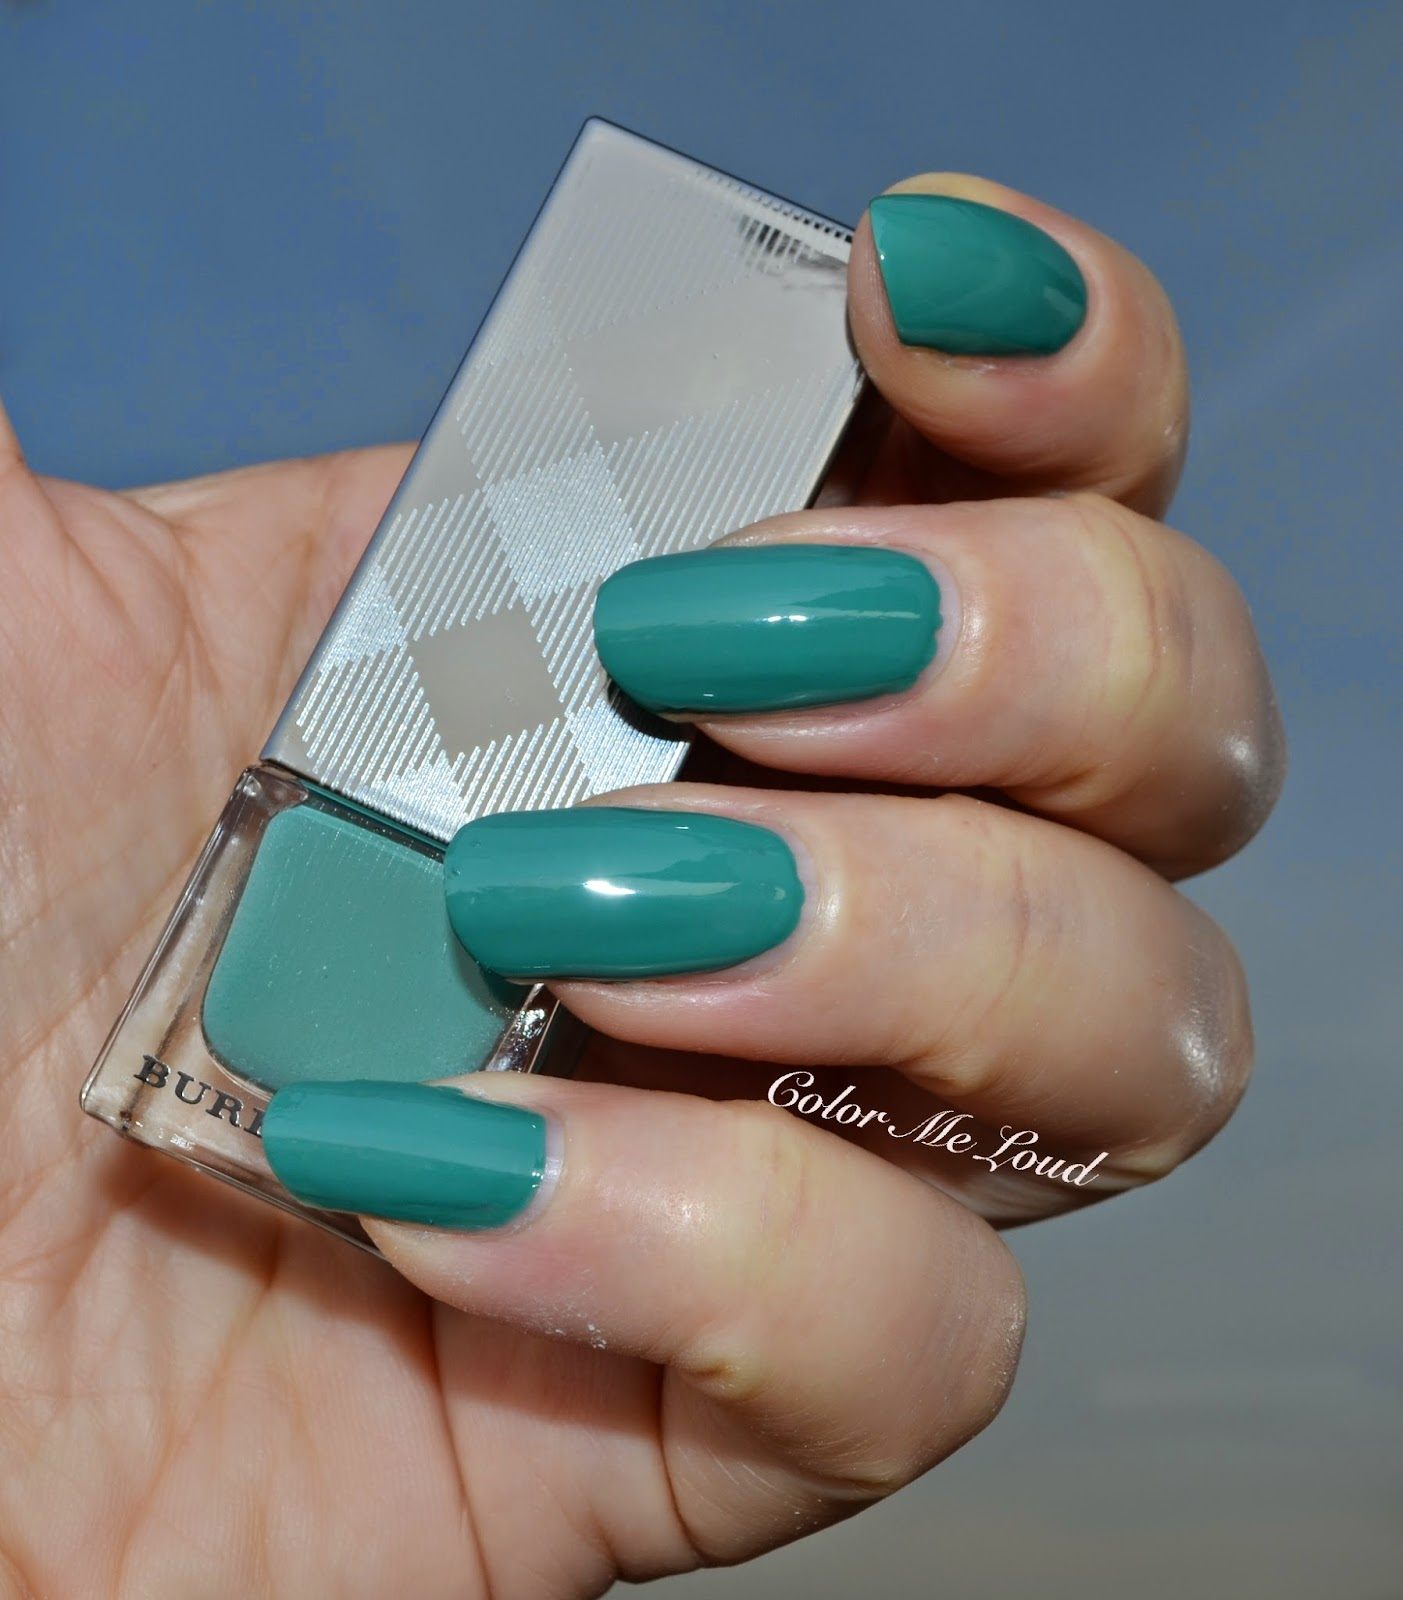 Burberry Nail Polish #418 Aqua Green